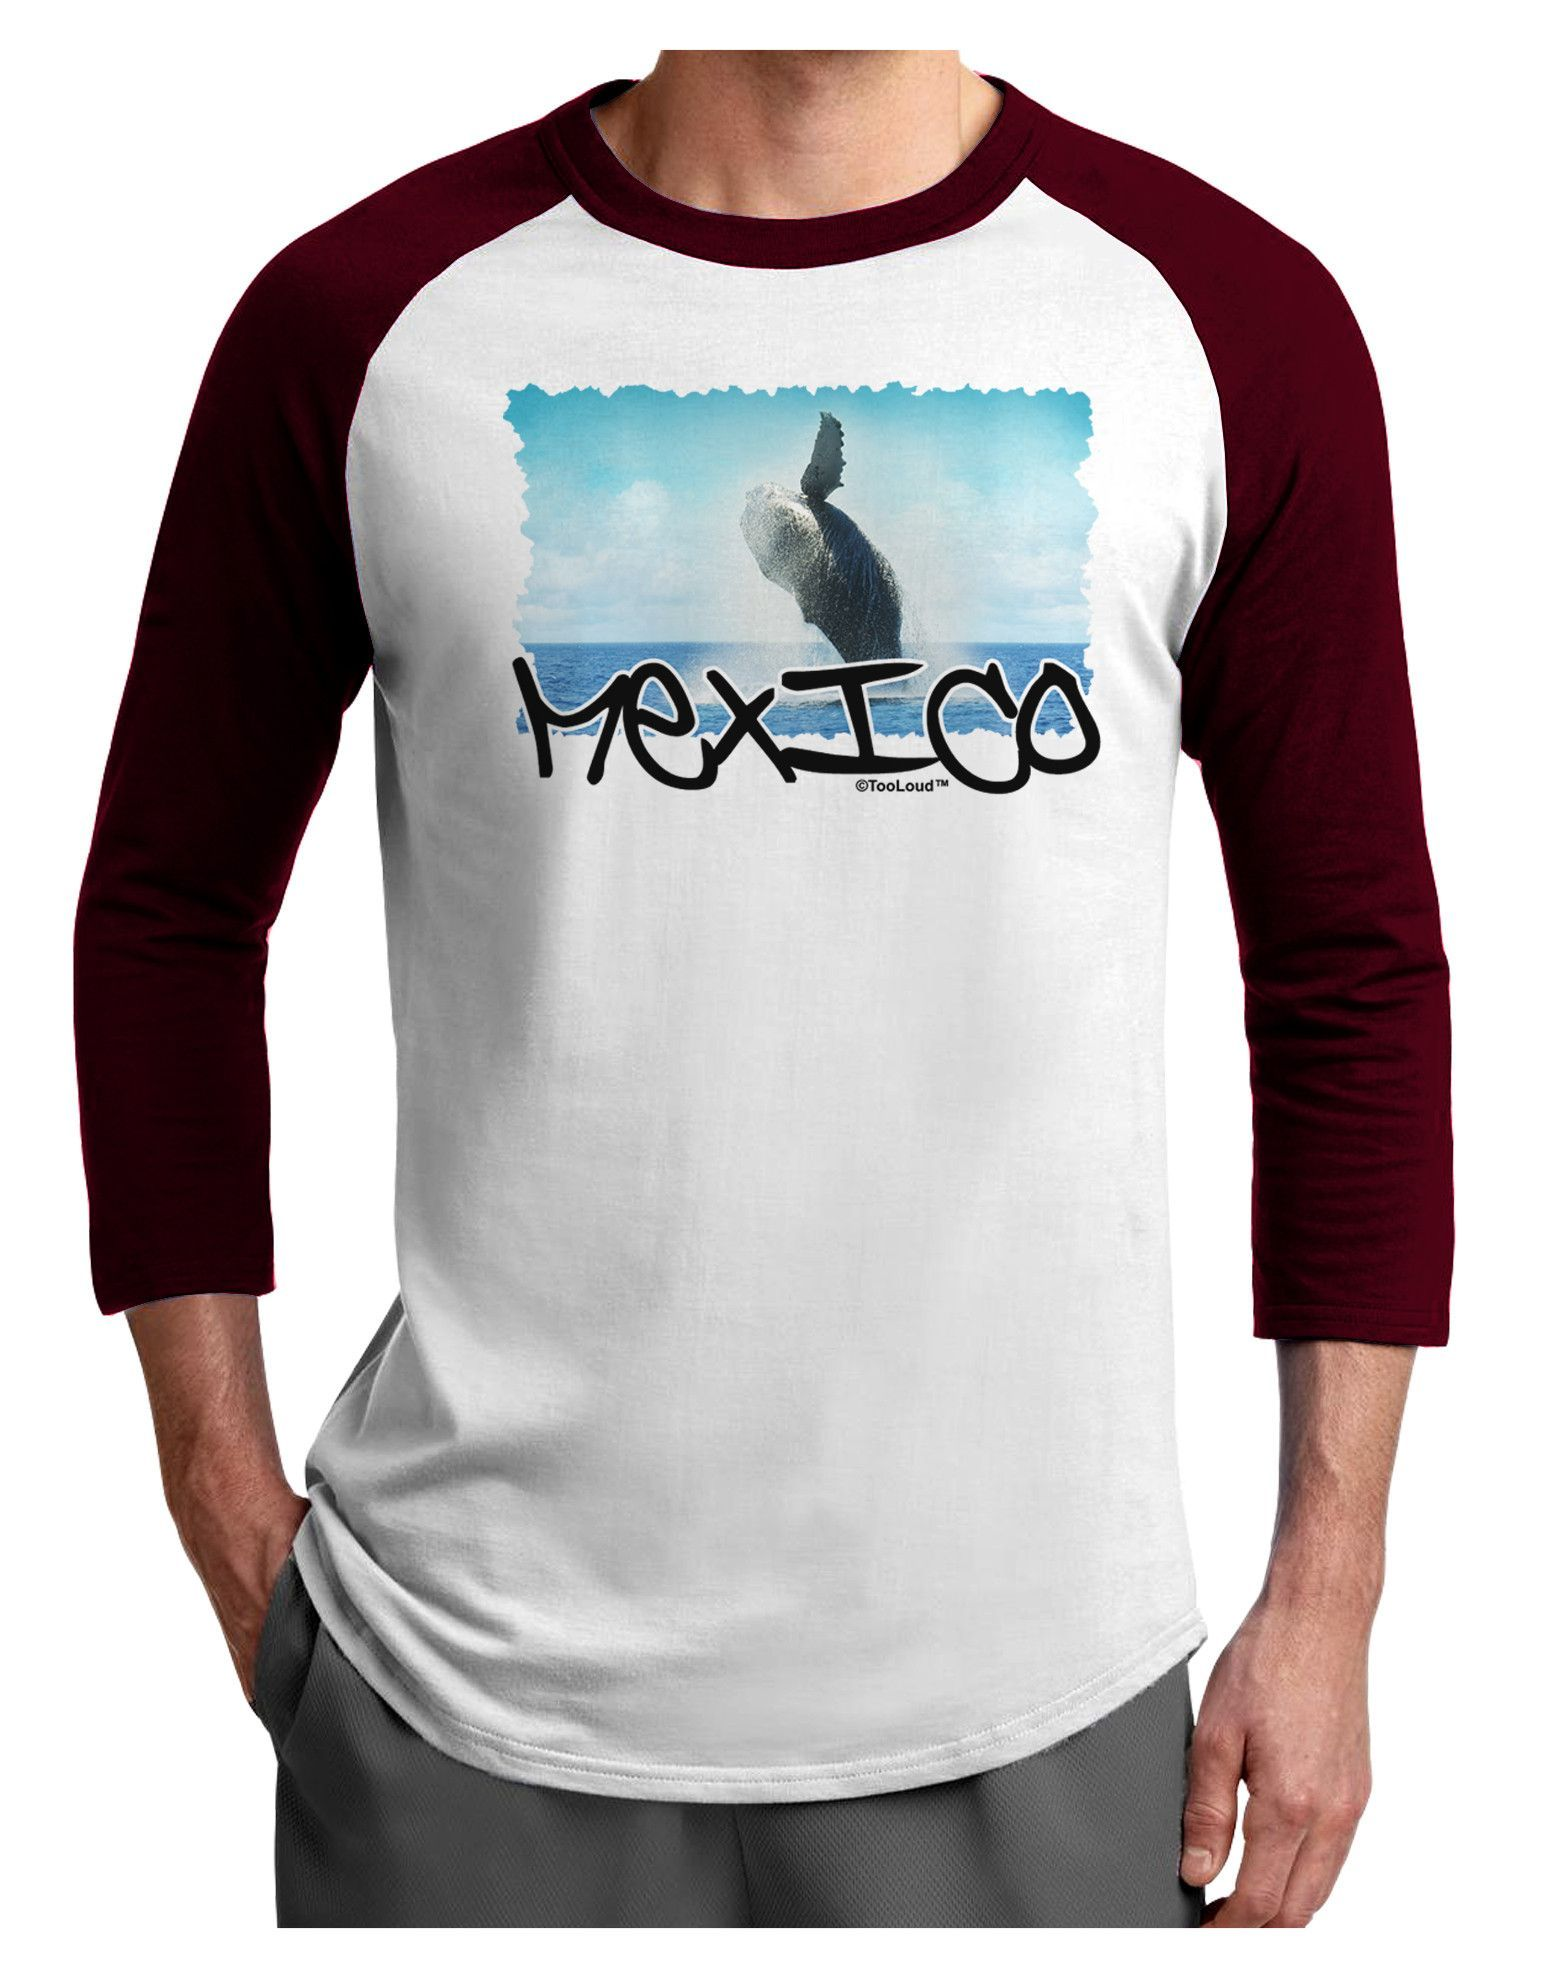 TooLoud Mexico - Whale Watching Cut-out Adult Raglan Shirt